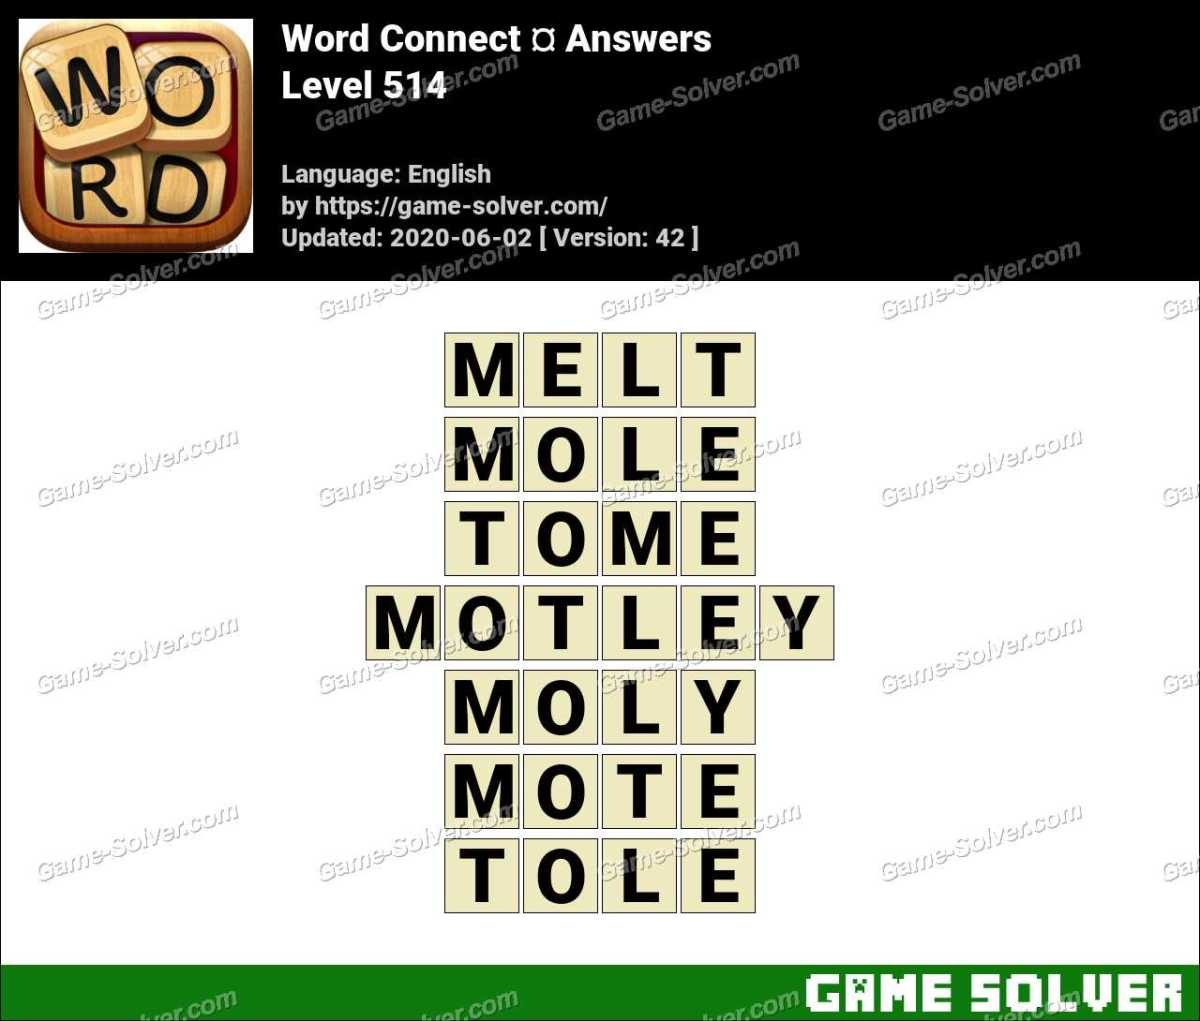 Word Connect Level 514 Answers